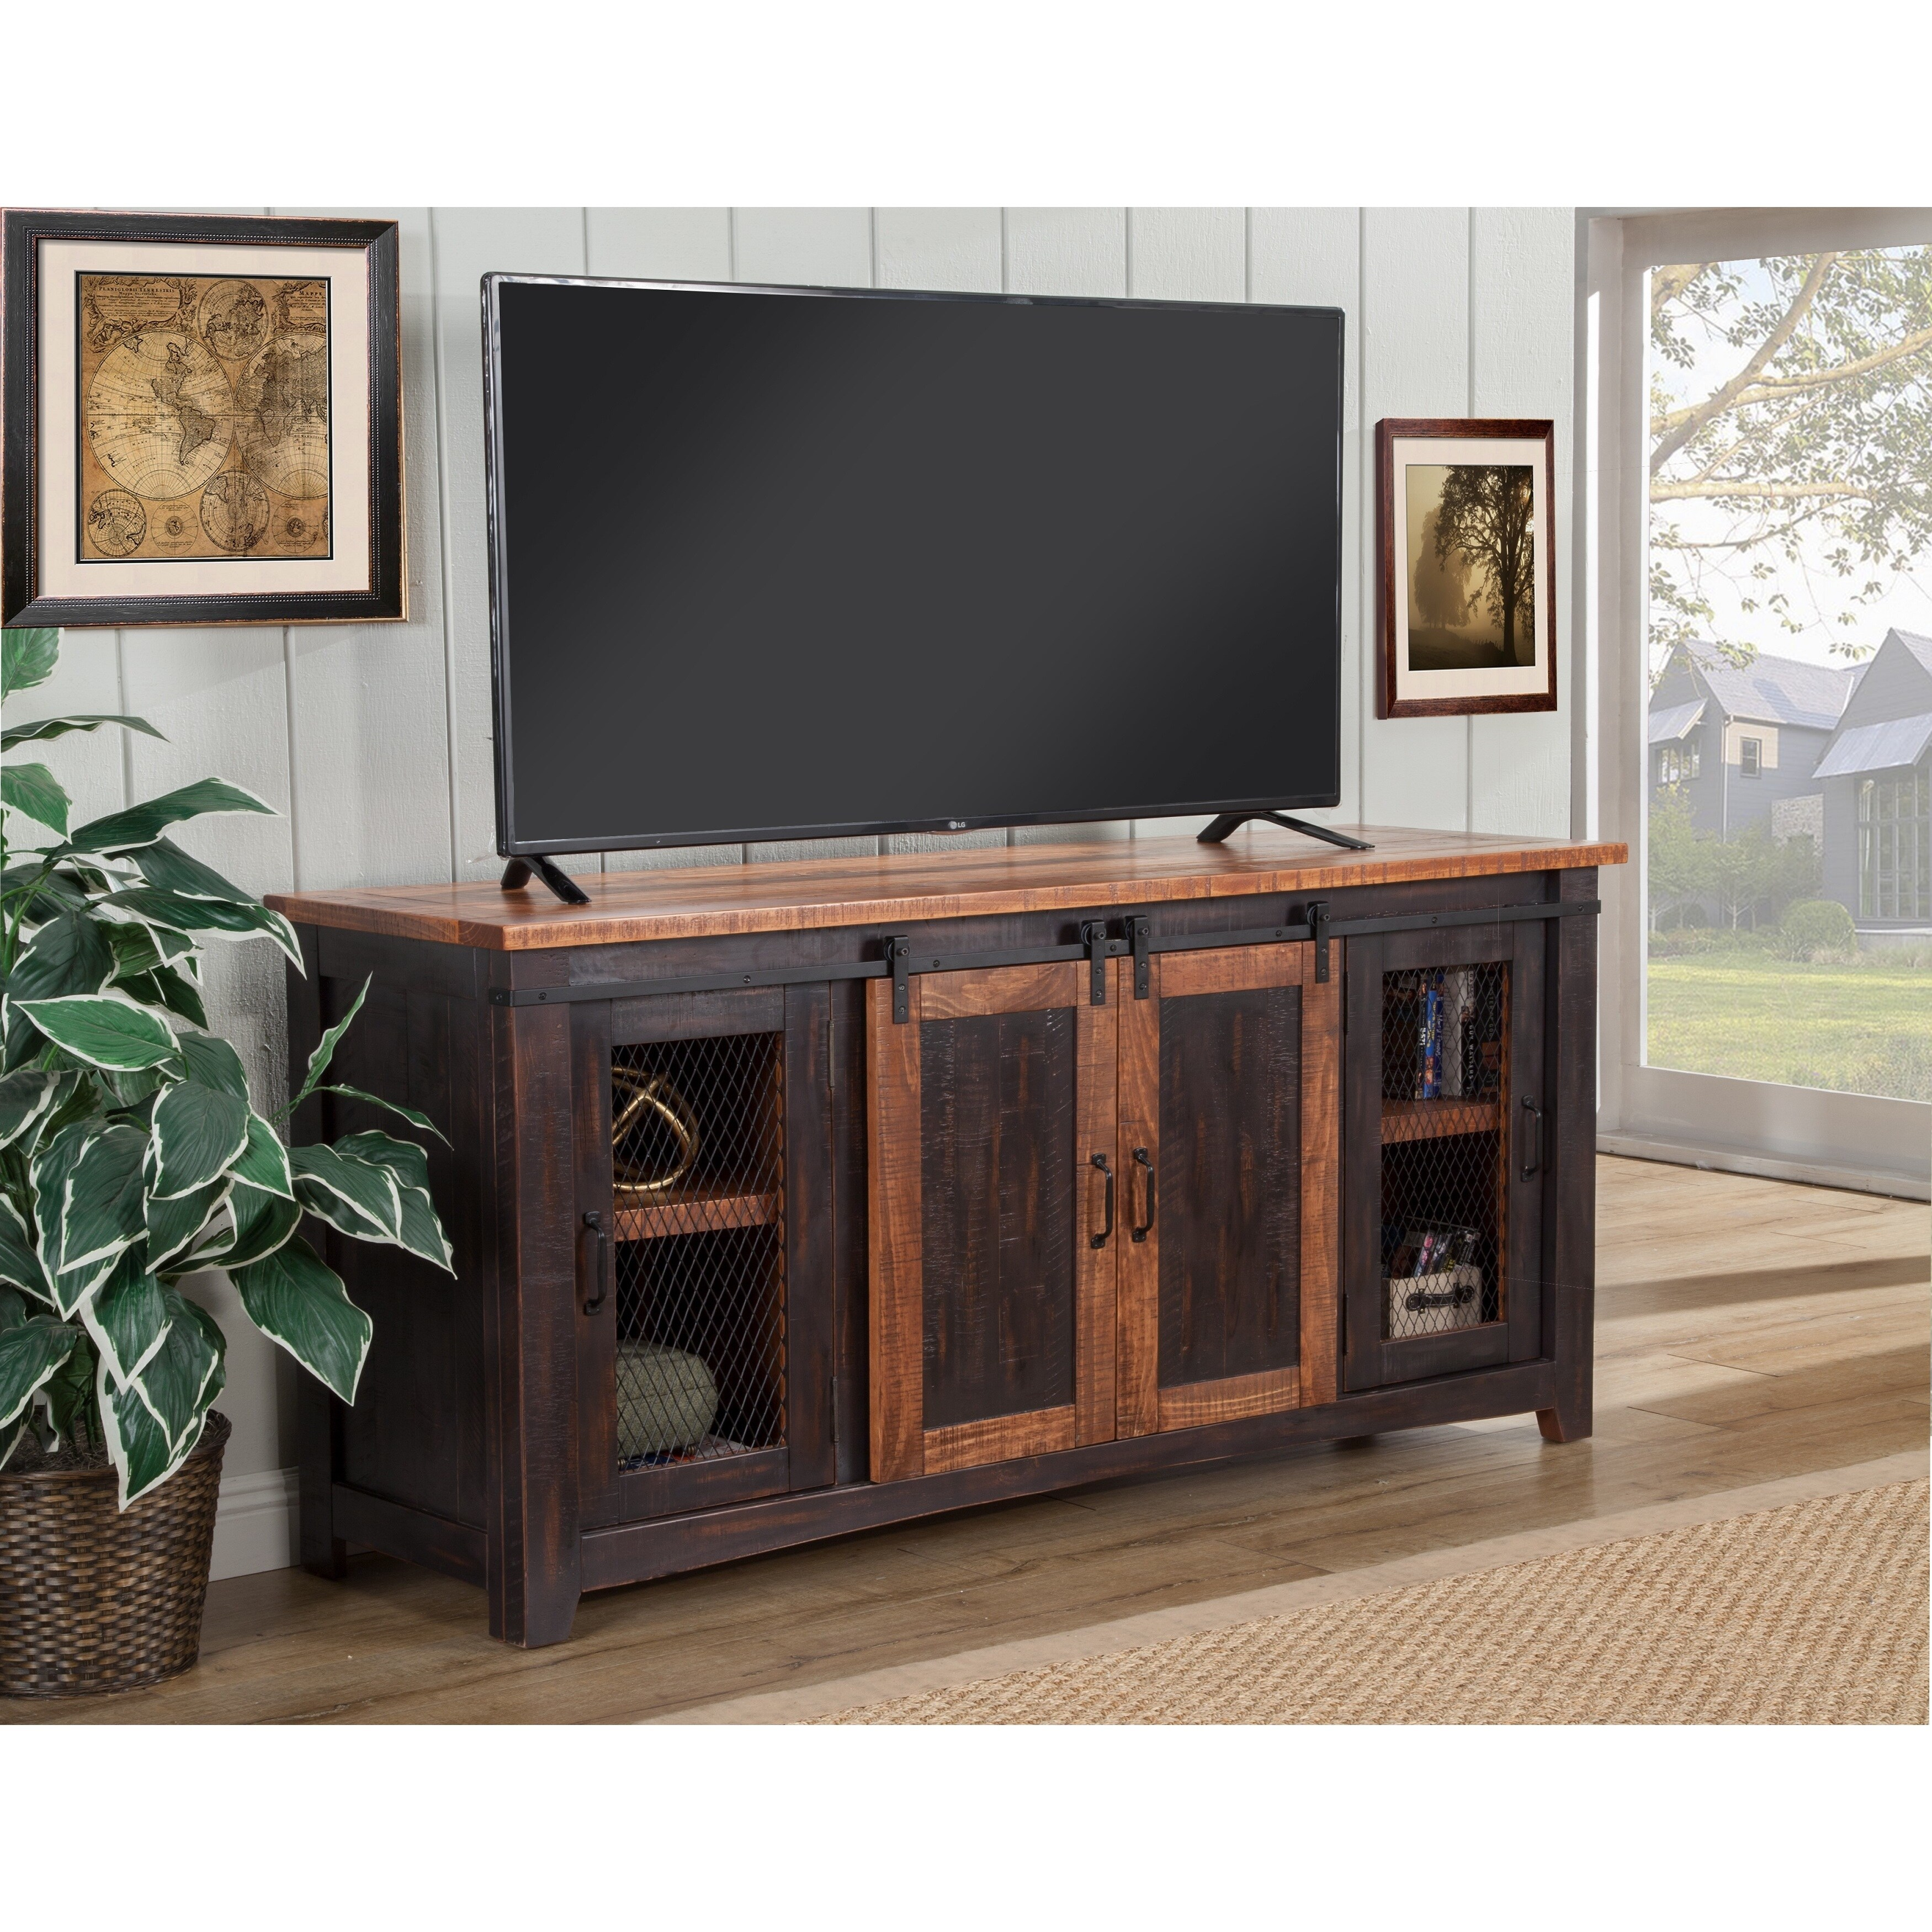 Shop Martin Svensson Home Santa Fe 65 Tv Stand 65 Inches In Width